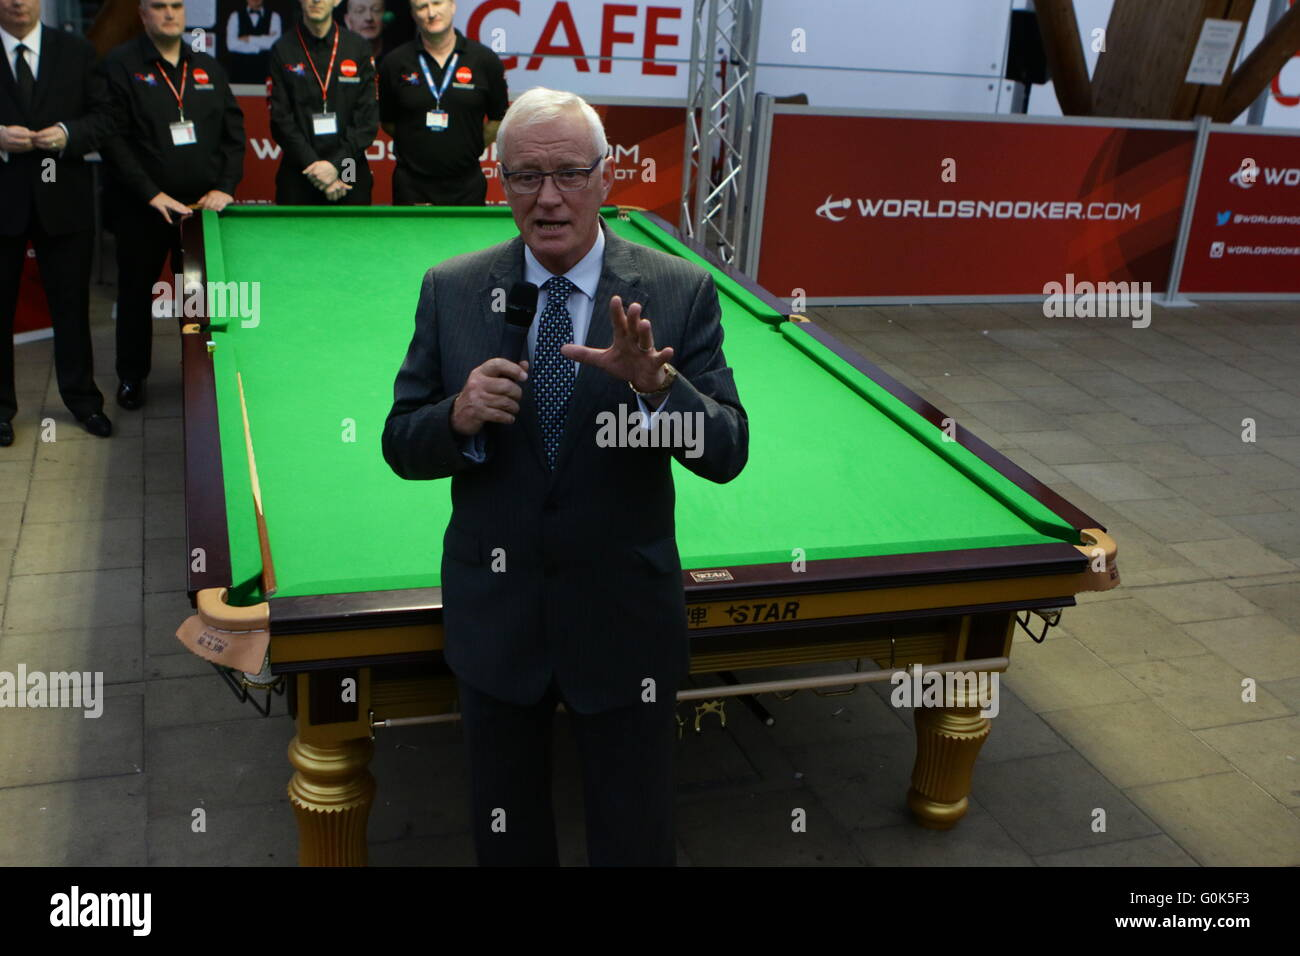 02.05.2016: World Snooker and Sheffield City Council have agreed a momentous deal to keep the sport's biggest Stock Photo